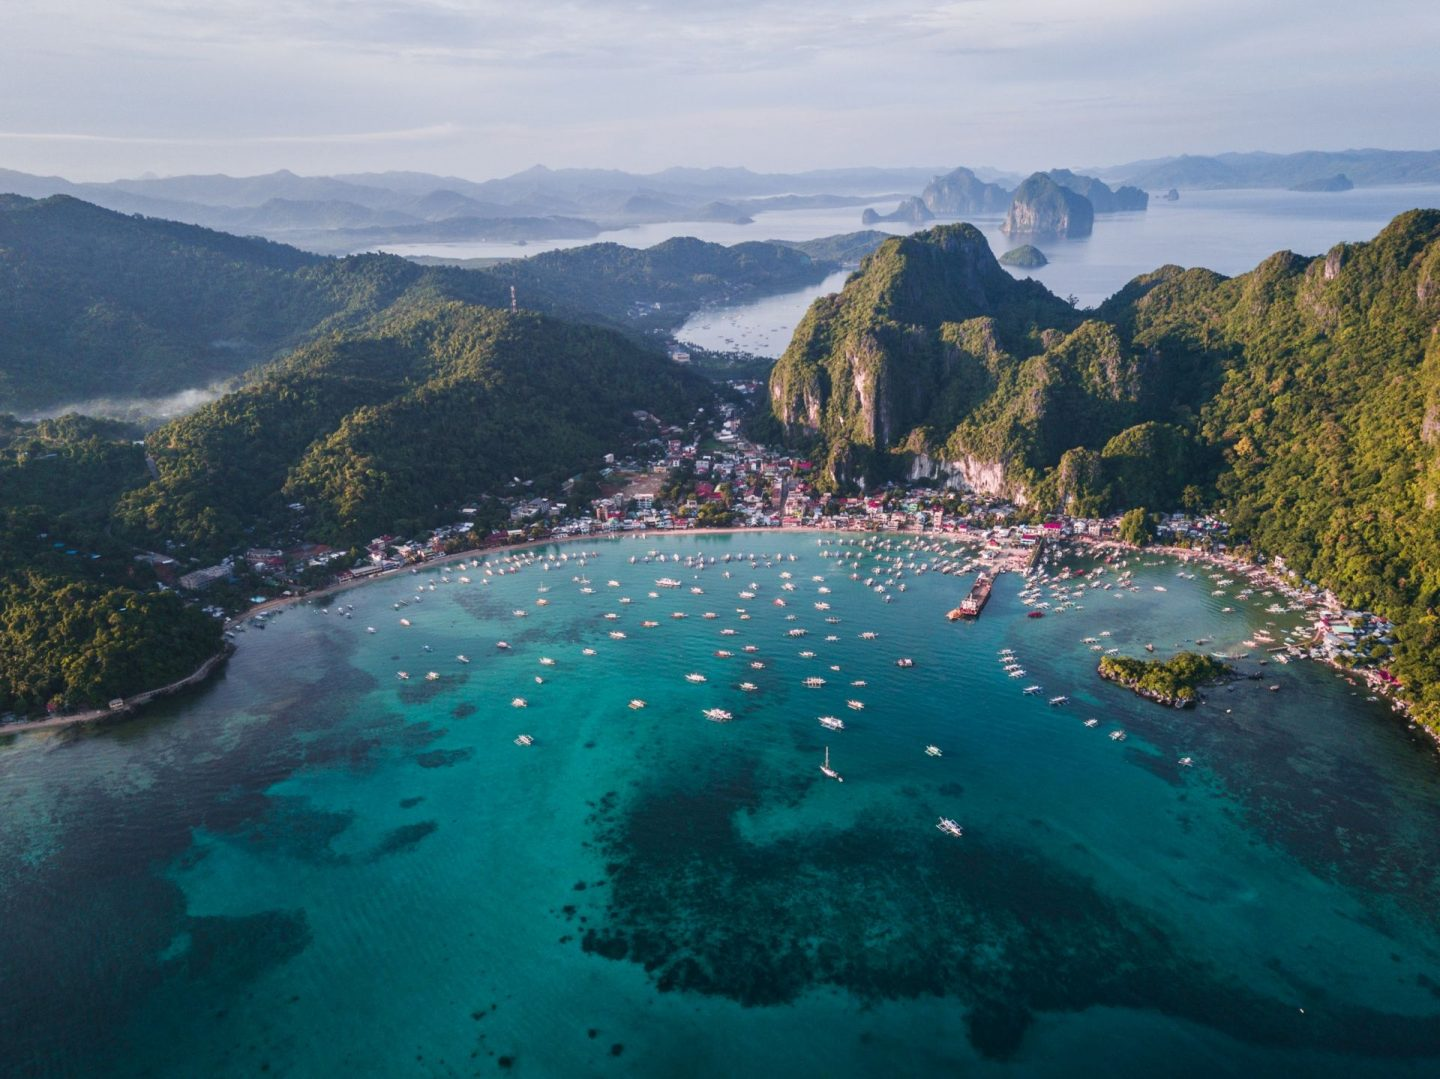 picture of the philippines with boats in the ocean near a village, islands of the philippines, palawan, islands located in asia, blue water and green mountains